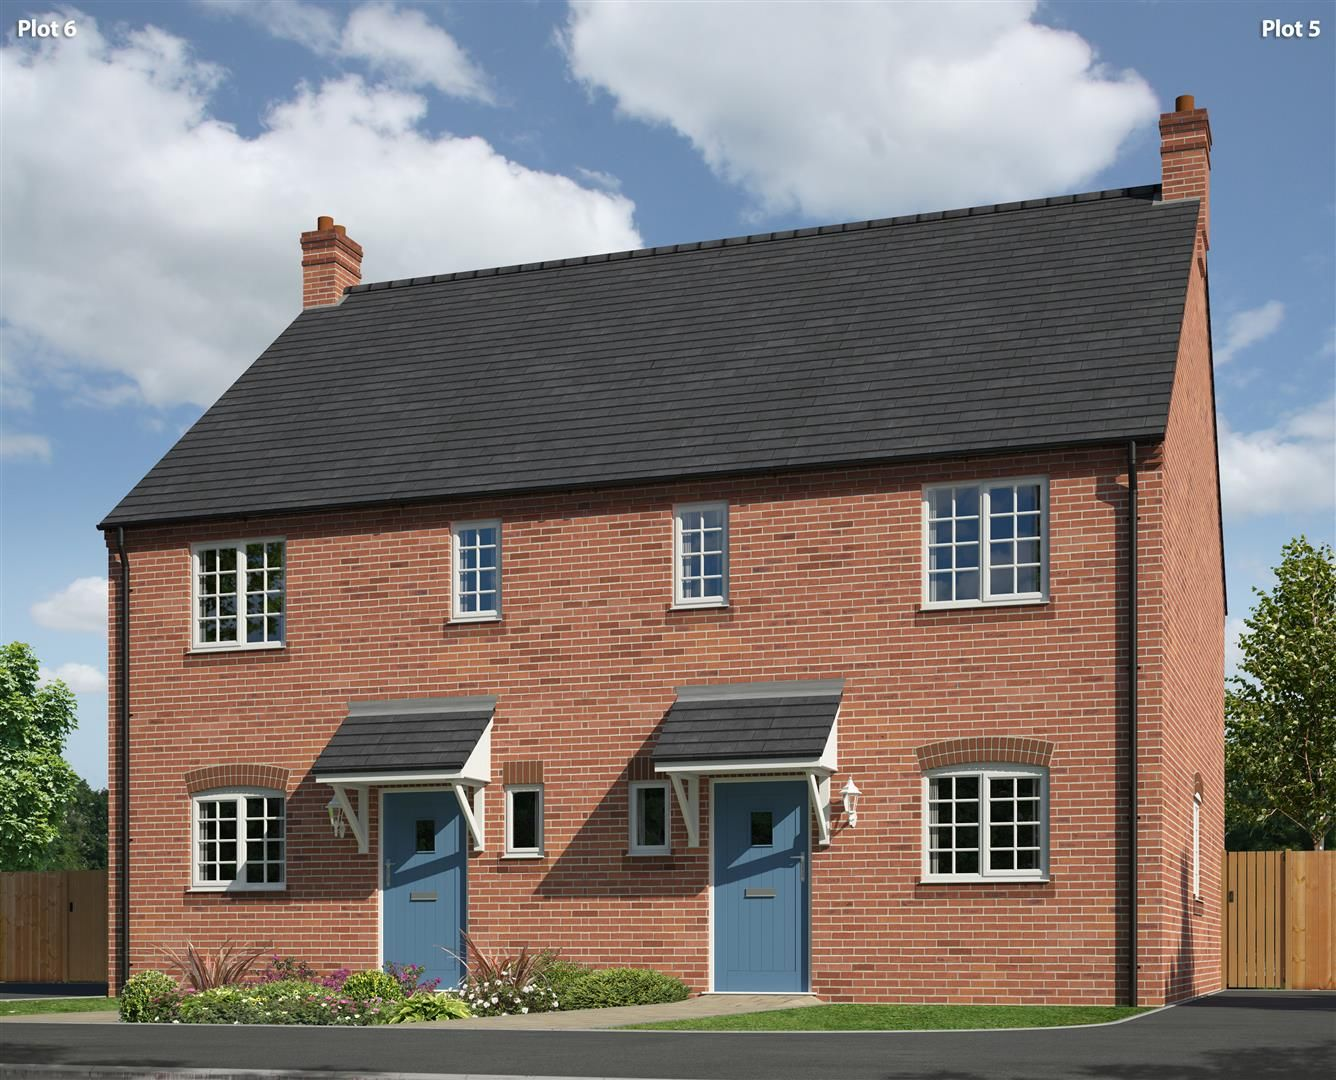 Property photo 1 of 3. Connexus - Welshpool Road, Ford - Plots 5 & 6 A 30